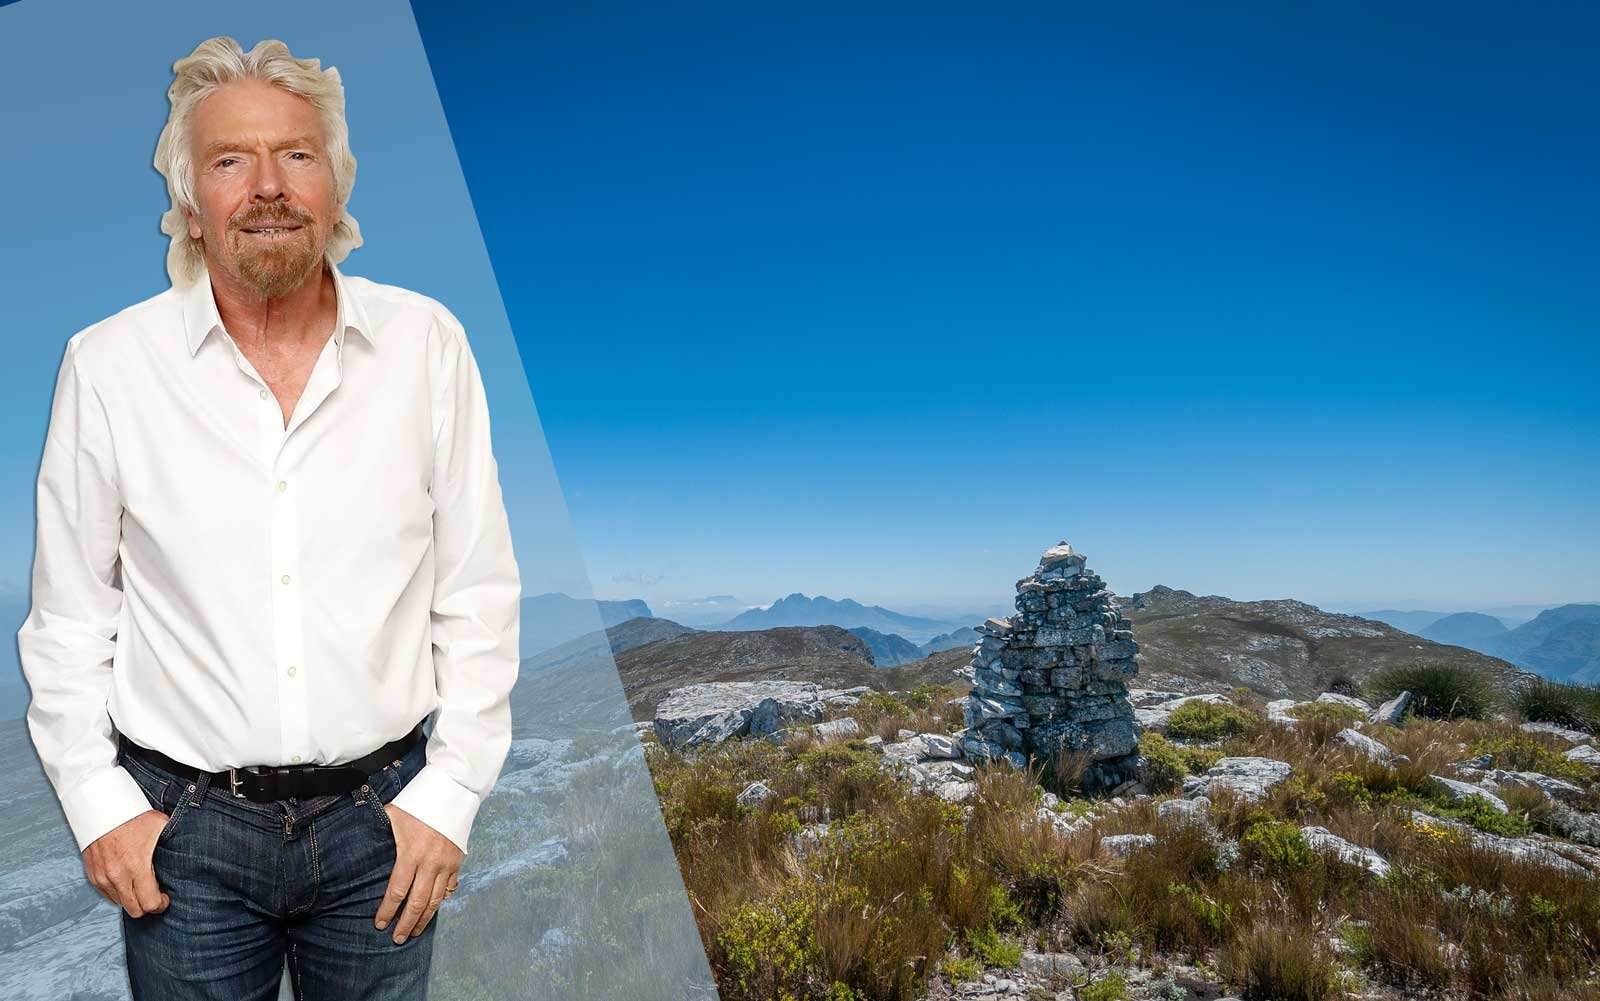 Richard Branson Gave Us A Peek At His Gorgeous Hotel In South Africa's Wine Country photo